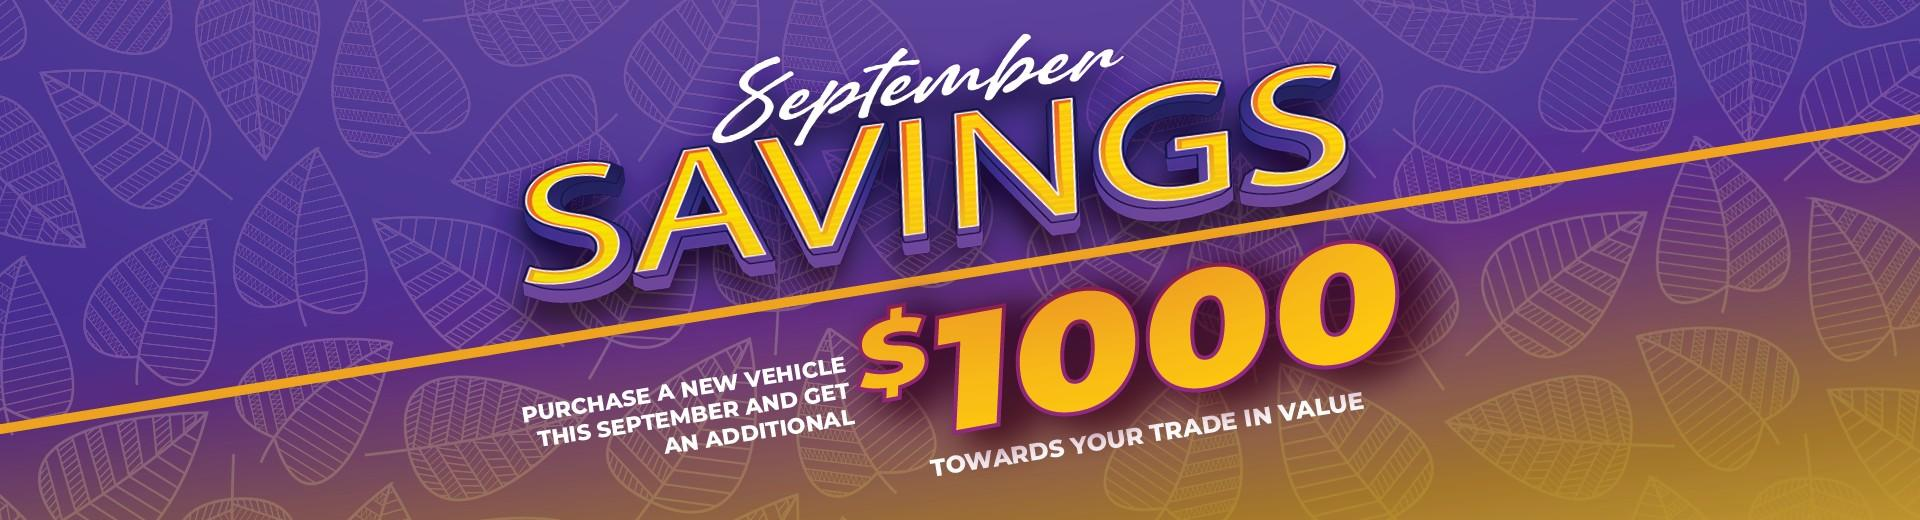 September Savings at Grande Prairie Chrysler Jeep Dodge in 11448 Westgate Drive